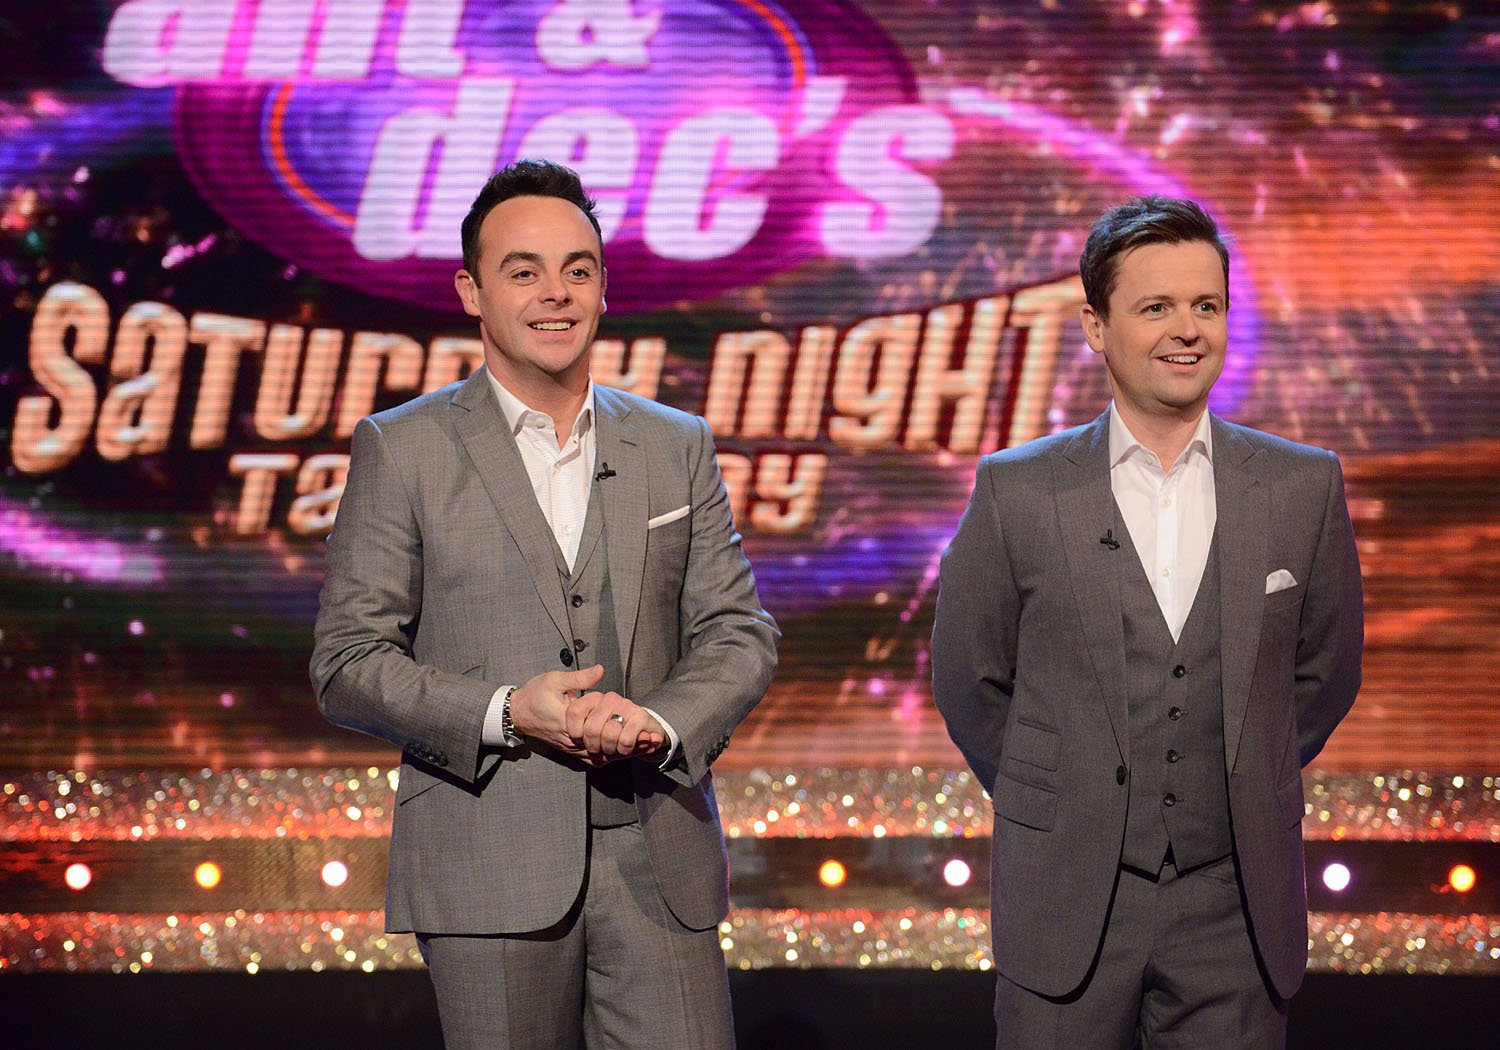 Television Programme: Ant & Dec's Saturday Night Takeaway with Anthony McPartlin and Declan Donnelly. ANT & DECS SATURDAY NIGHT TAKEAWAY ON SATURDAY 29TH MARCH 2014 Ant & Dec s Saturday Night Takeaway. Picture Shows: Ant & Dec Award winning hosts Ant & Dec are back with their hugely popular entertainment series Ant & Dec s Saturday Night Takeaway.